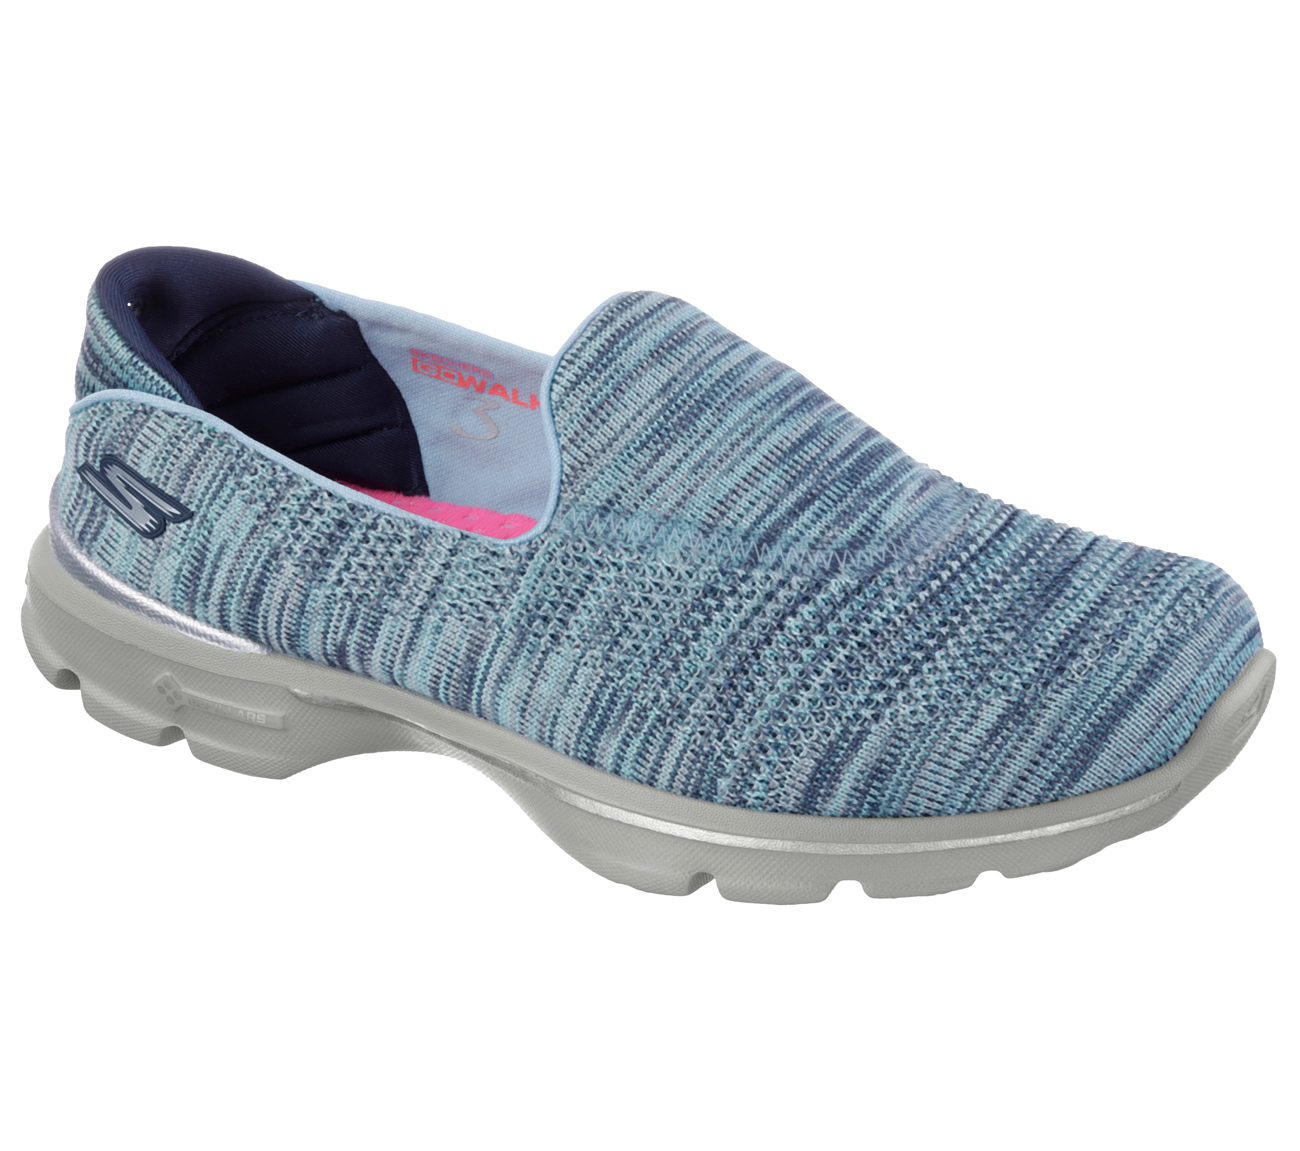 Where To Buy Skechers Go Walk Shoes